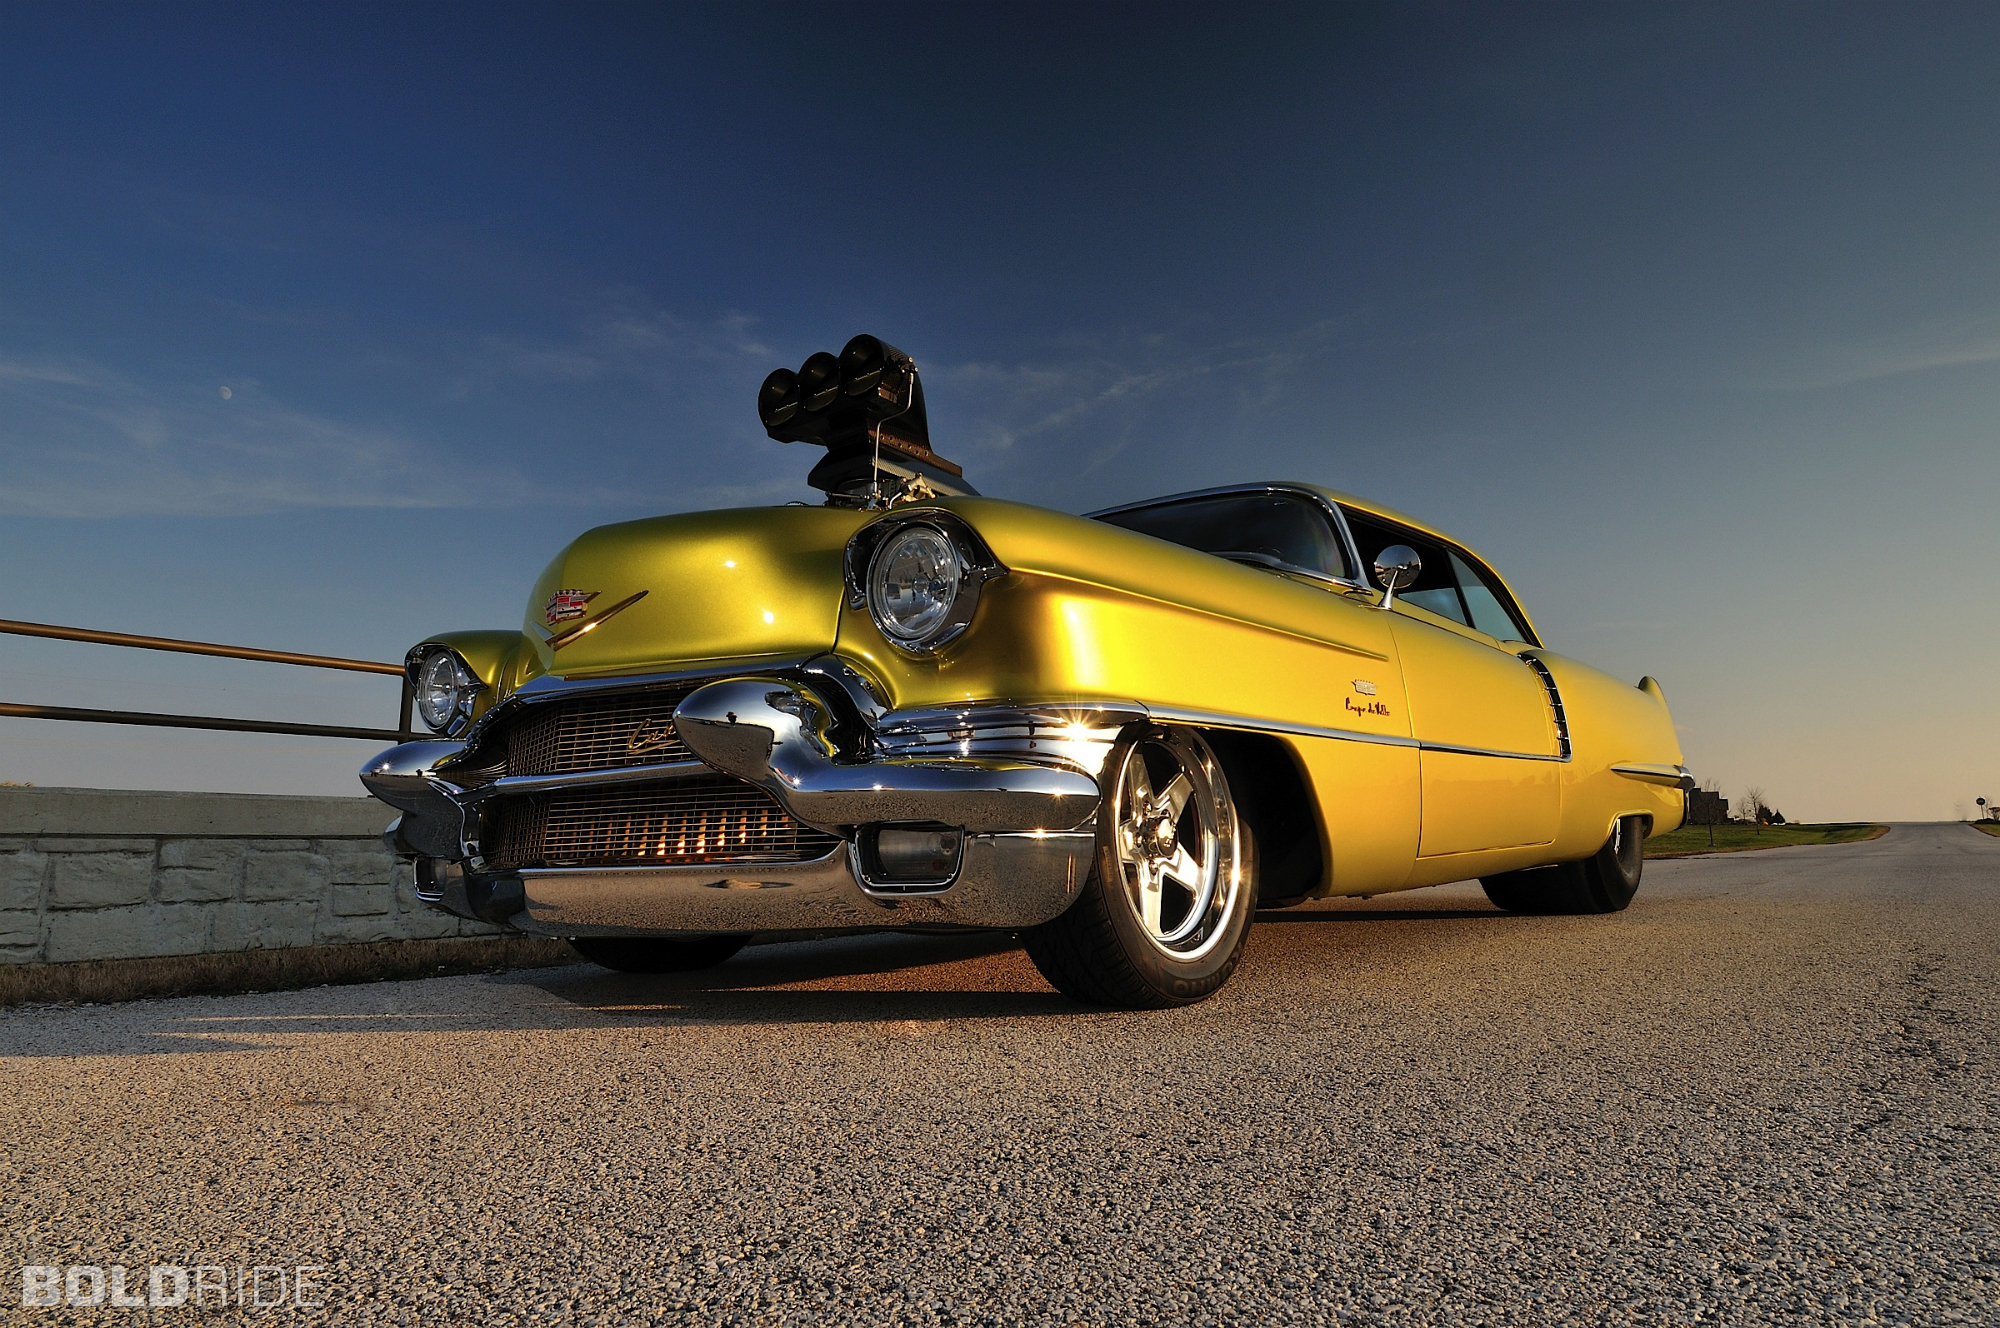 Cadillac Coupe deVille hot rod rods drag race racing retro w wallpaper 2000x1328